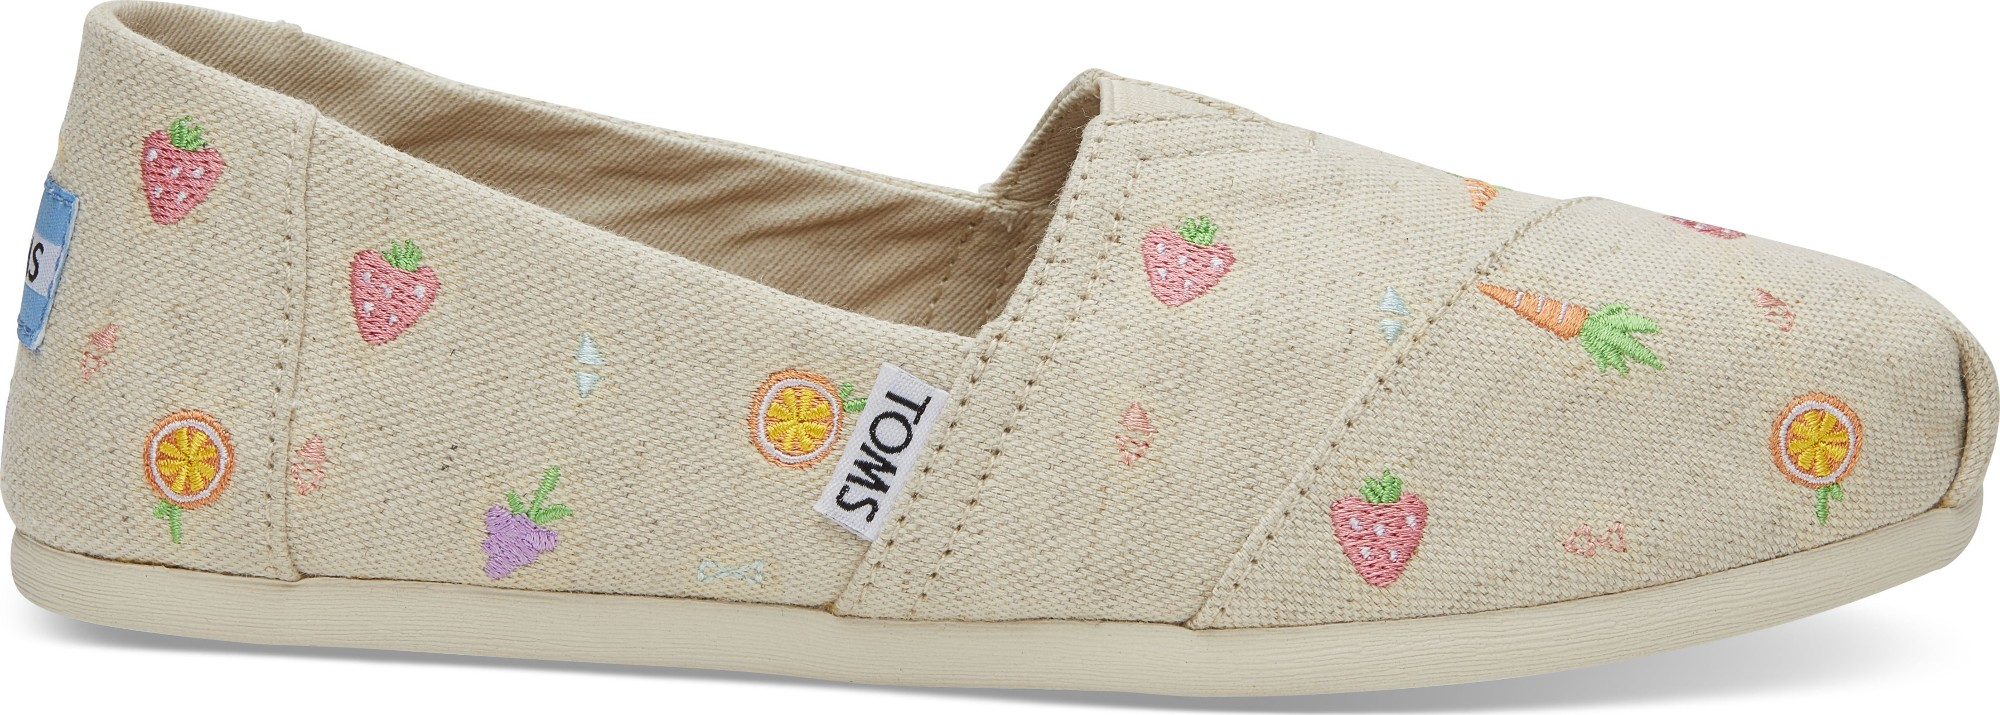 TOMS Farmers Market Embroidery Women's Alpargata Natural 38